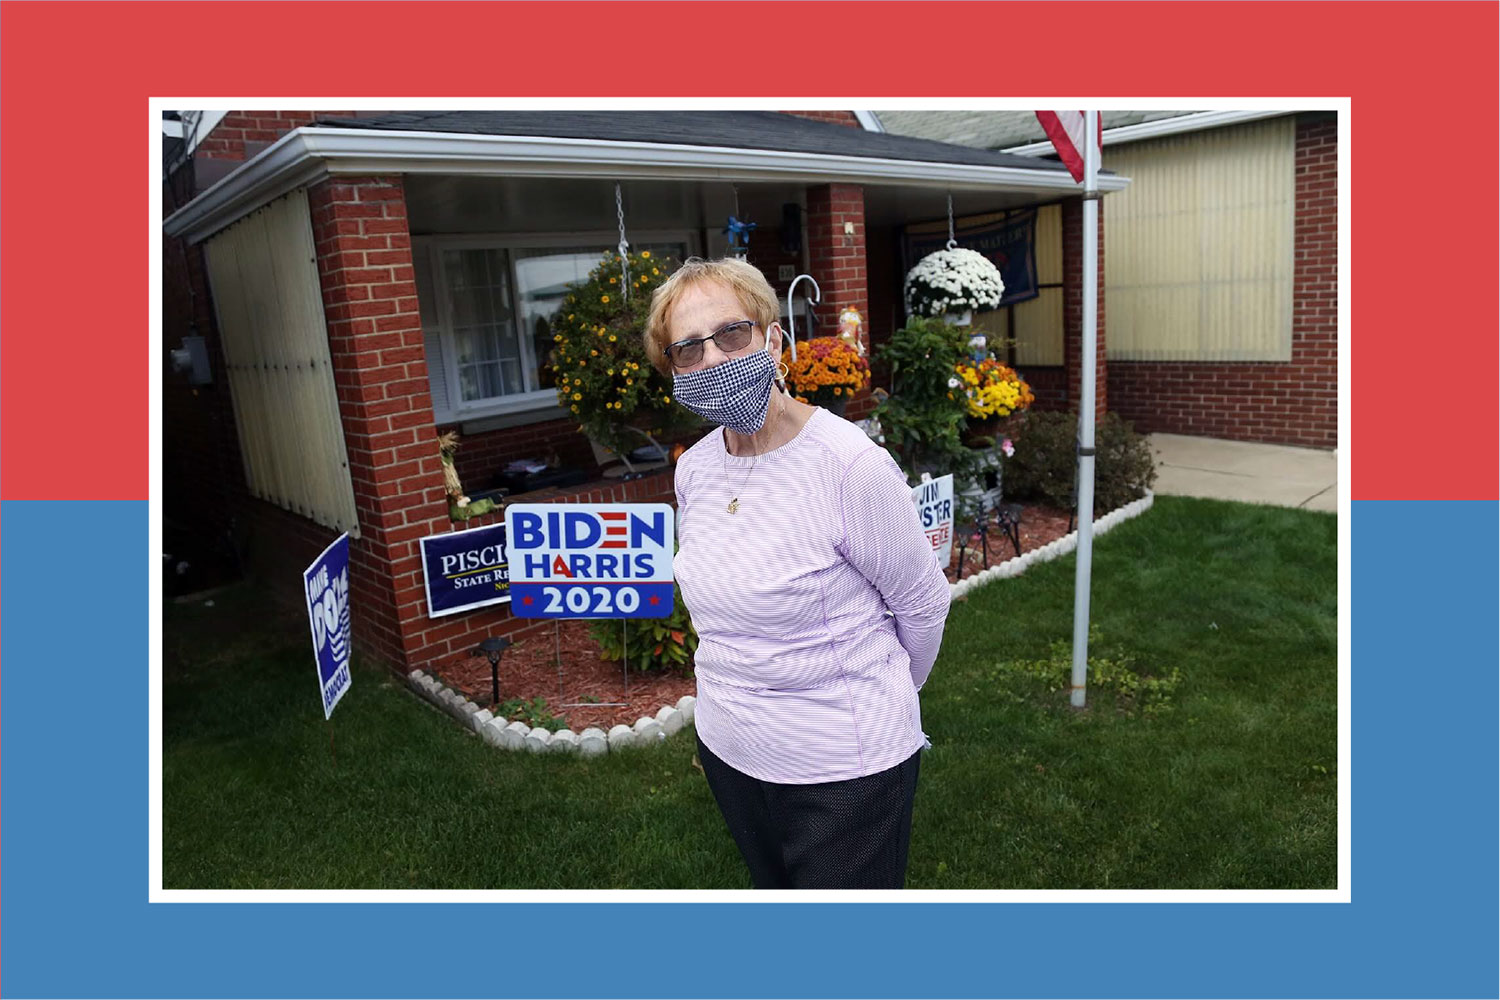 Rosemary Bradley in a black and white checkered mask, standing in her yard in front of a BIDEN HARRIS 2020 yard sign.